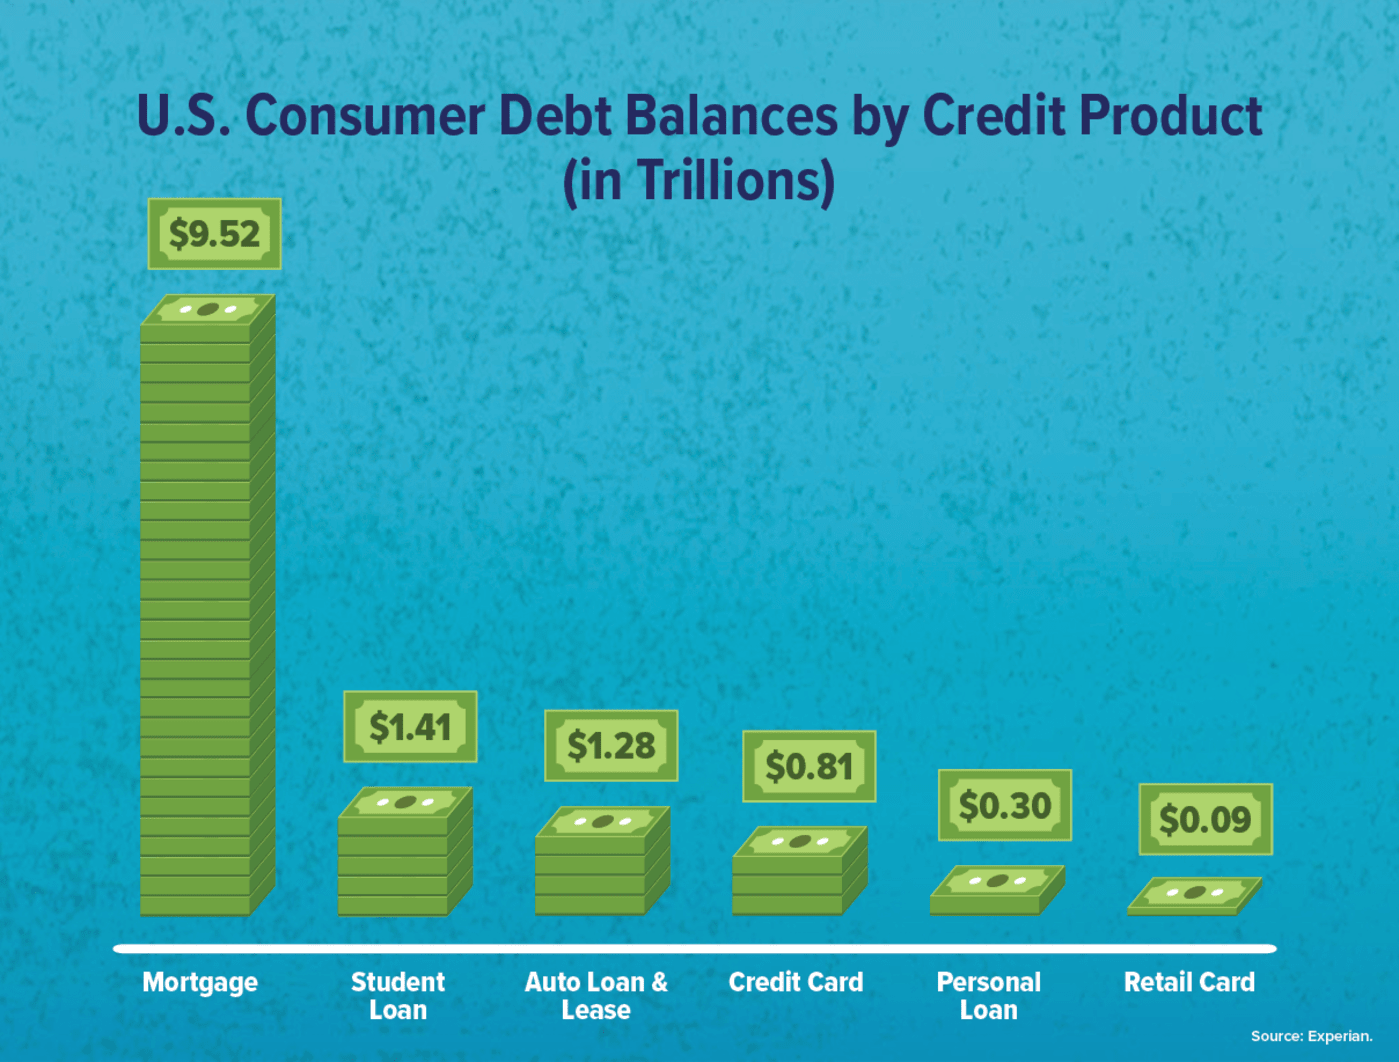 U.S. consumer debt balances by credit product graphic